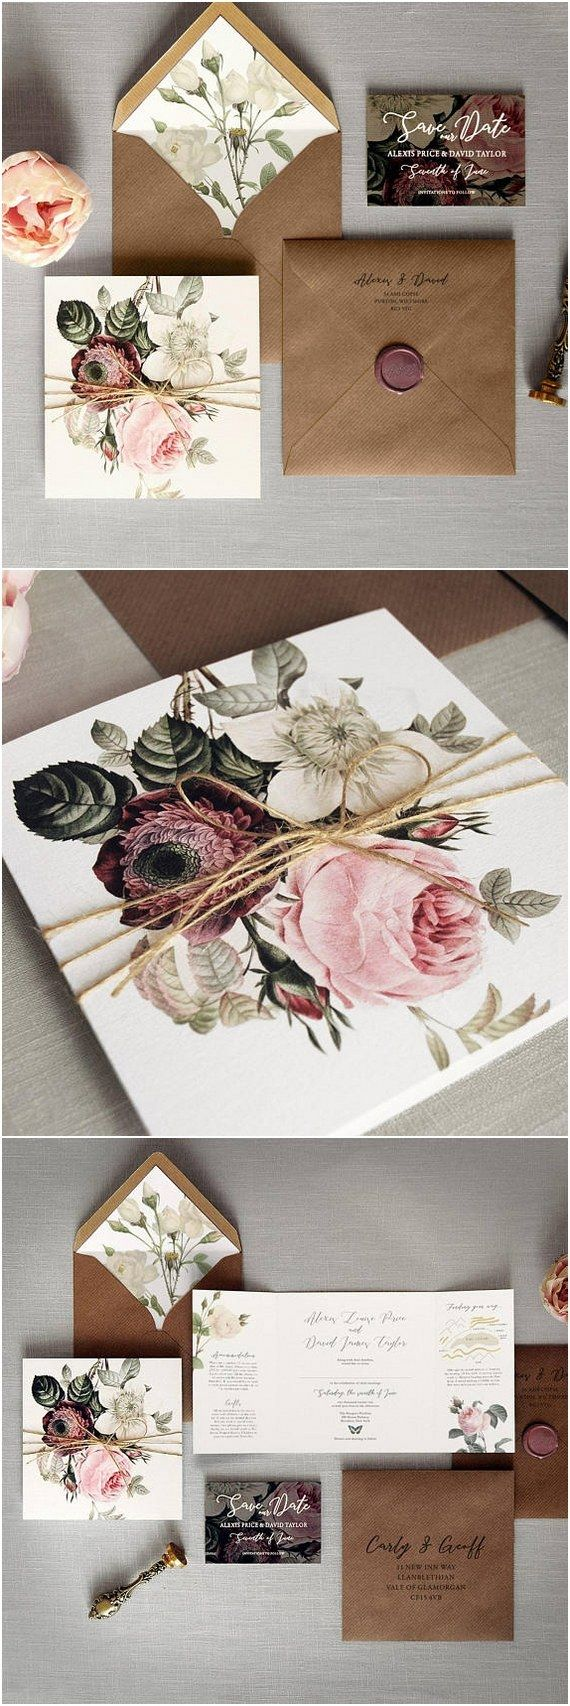 Luxury Folding Wedding Invitations #weddings #weddngideas #weddingcards #dpf #deerpearlflowers ❤️ http://www.deerpearlflowers.com/wedding-invitations-from-etsy/